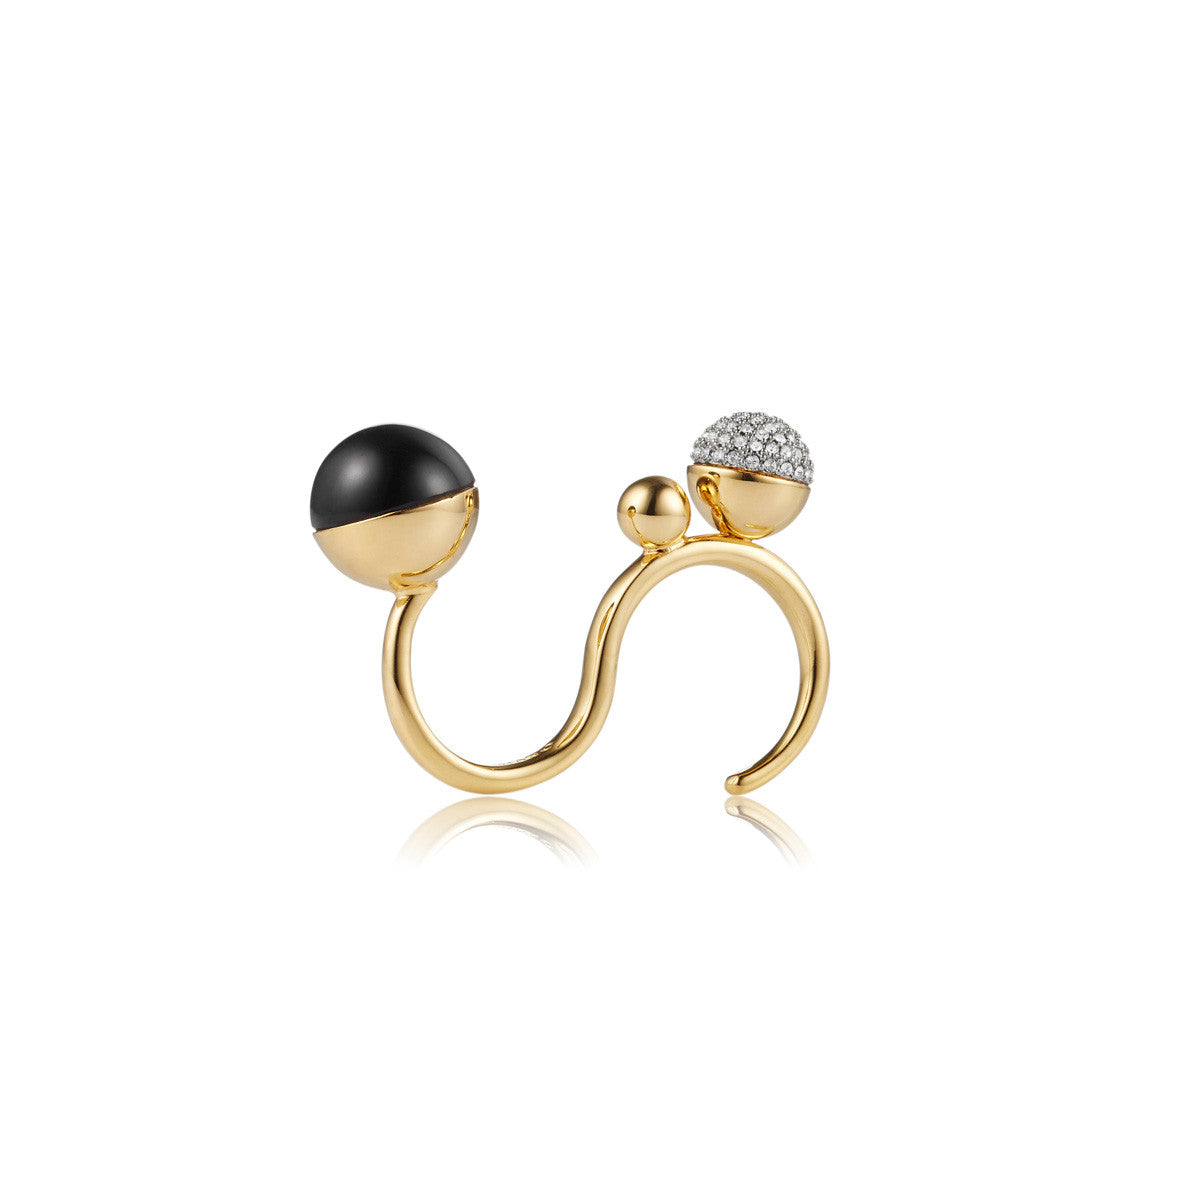 Solid brass, gold plated ring with black onyx and Swarovski® crystals - front